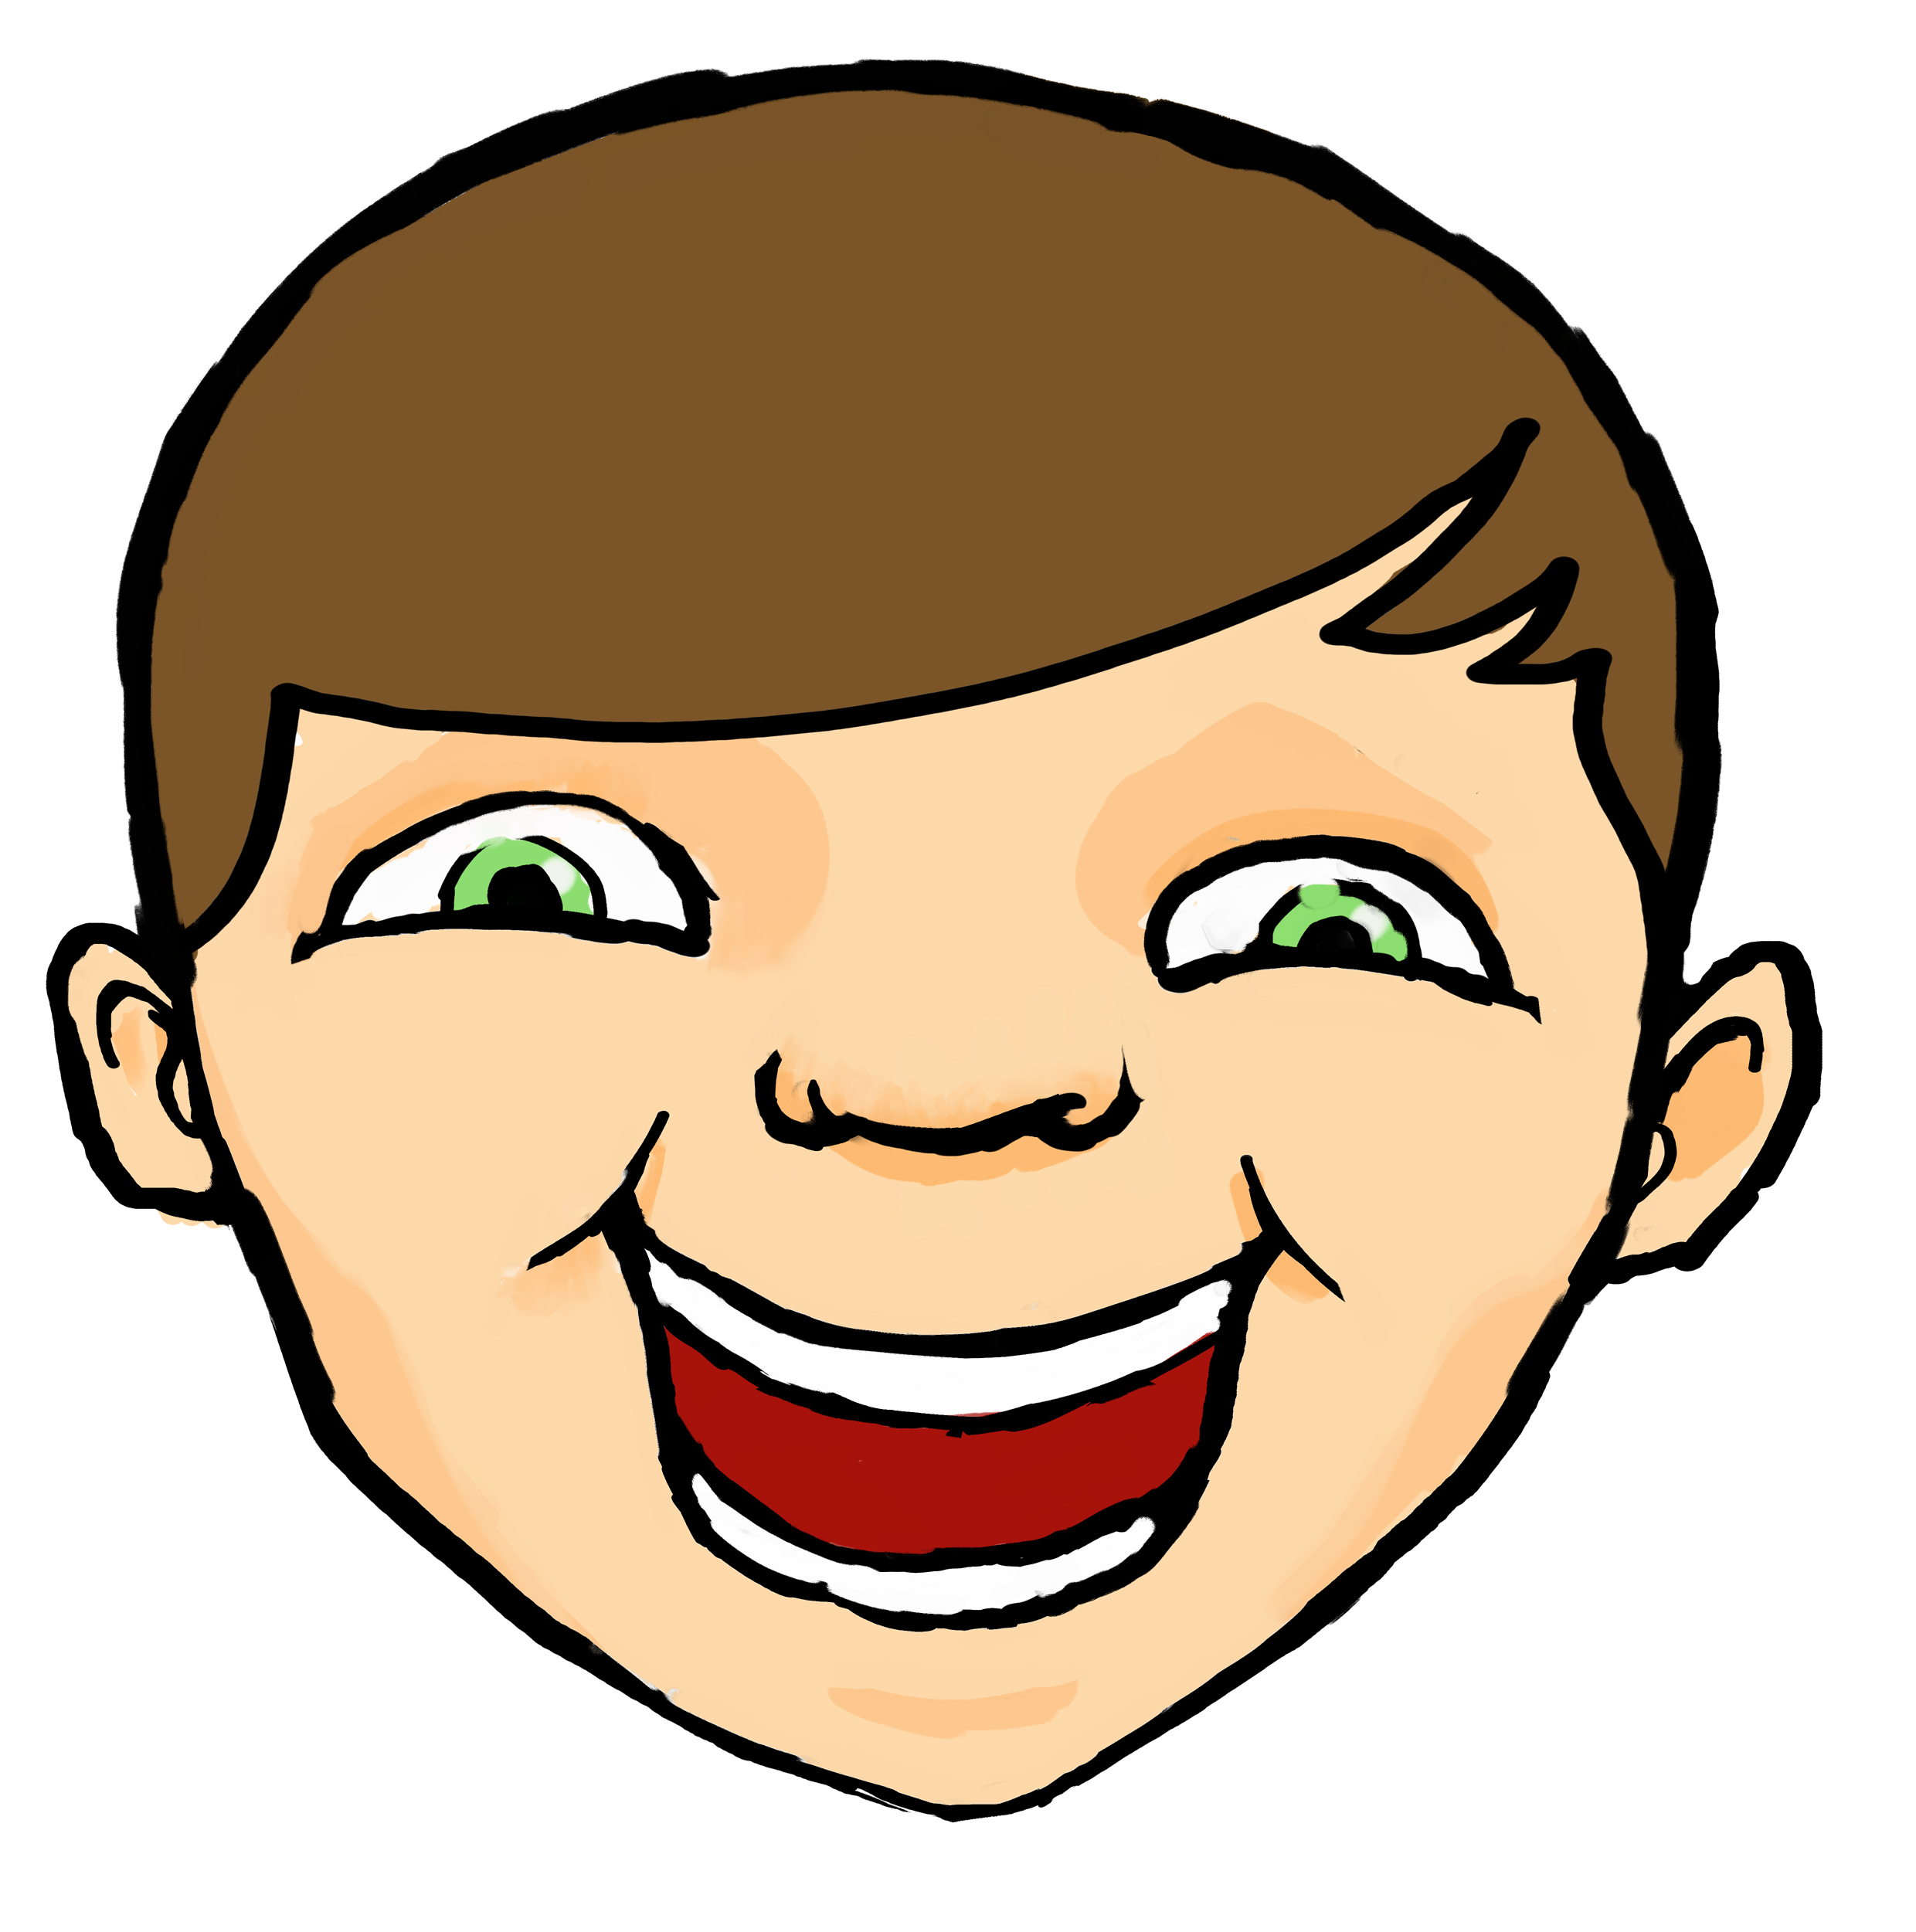 Best laughing face clip art 18161 - Clipart visage ...